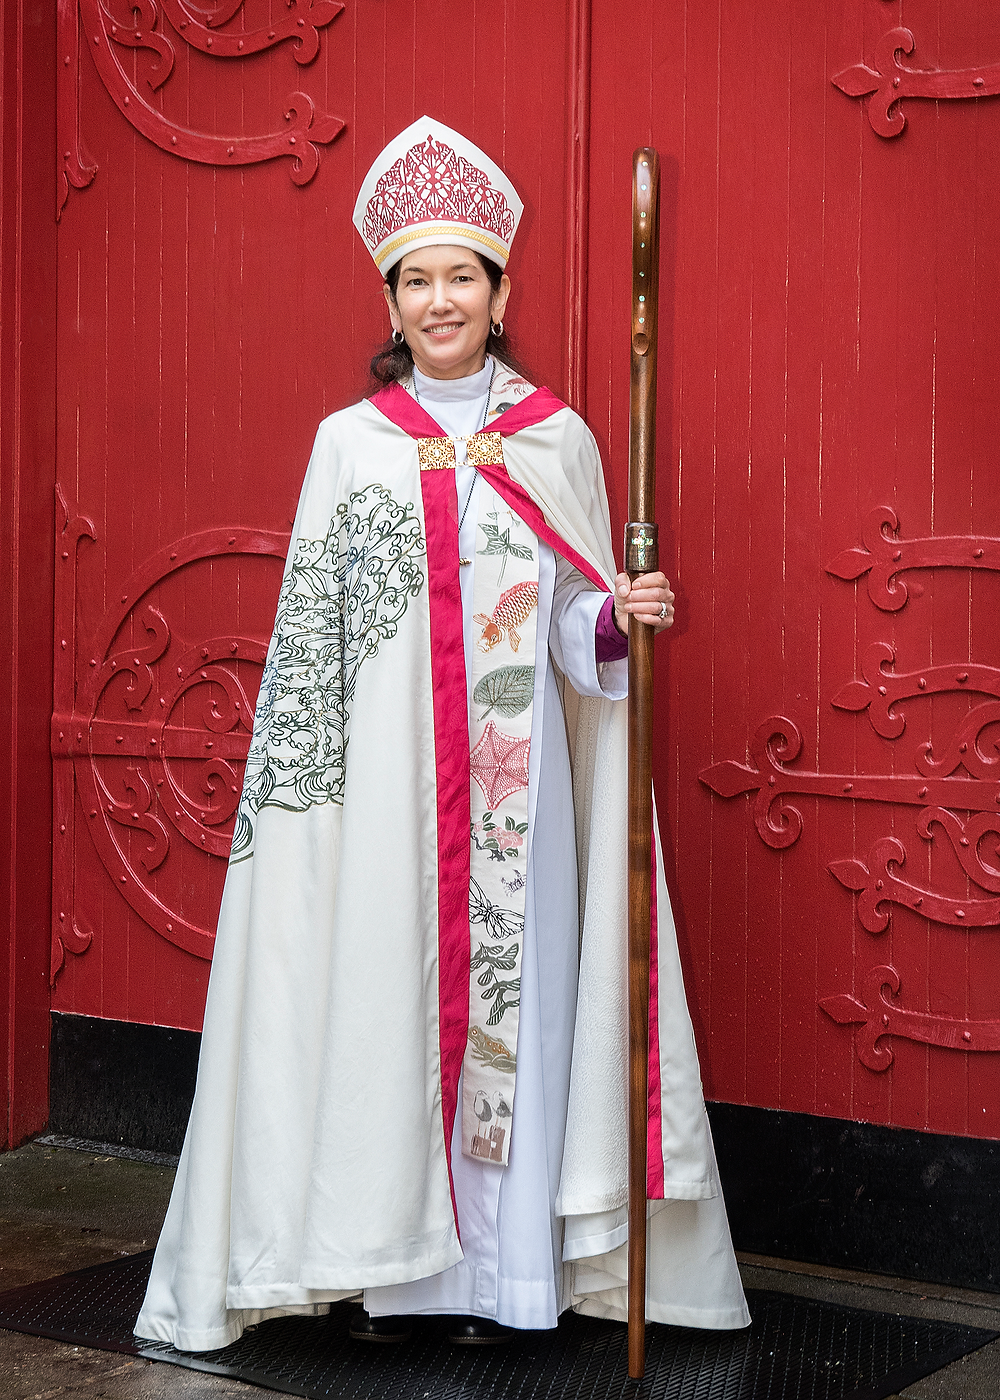 Bishop Akiyama stands in front of a red chapel door at Trinity Episcopal Cathedral in her vestments, holding her crozier.